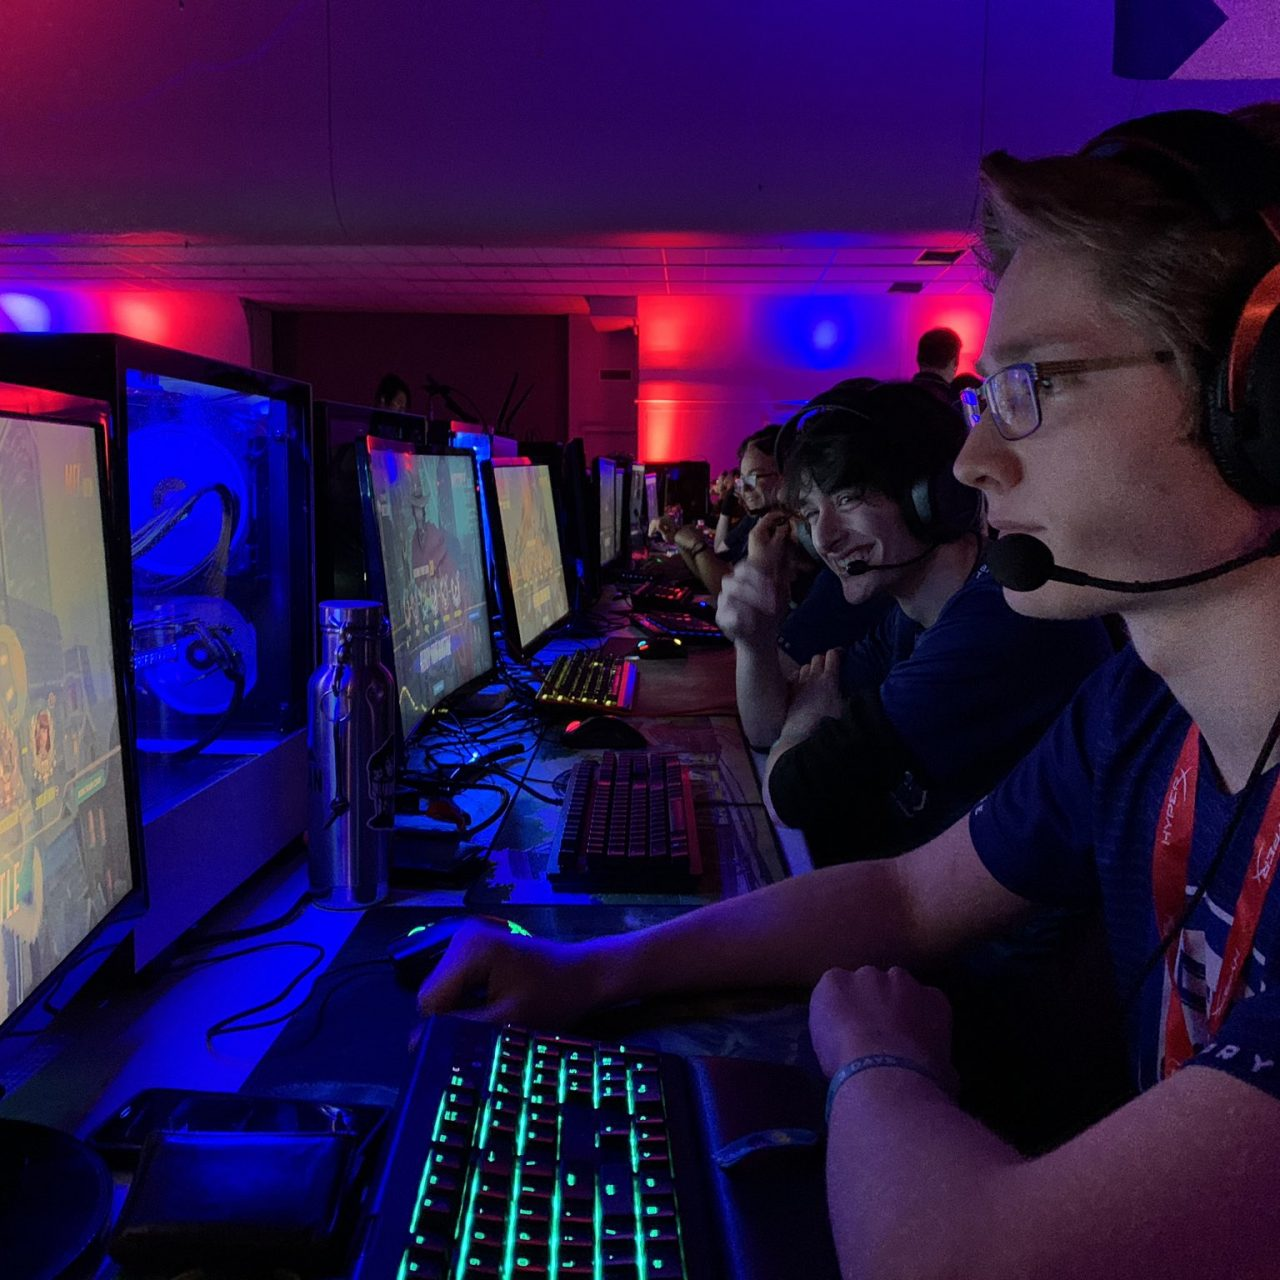 Student playing Esports games